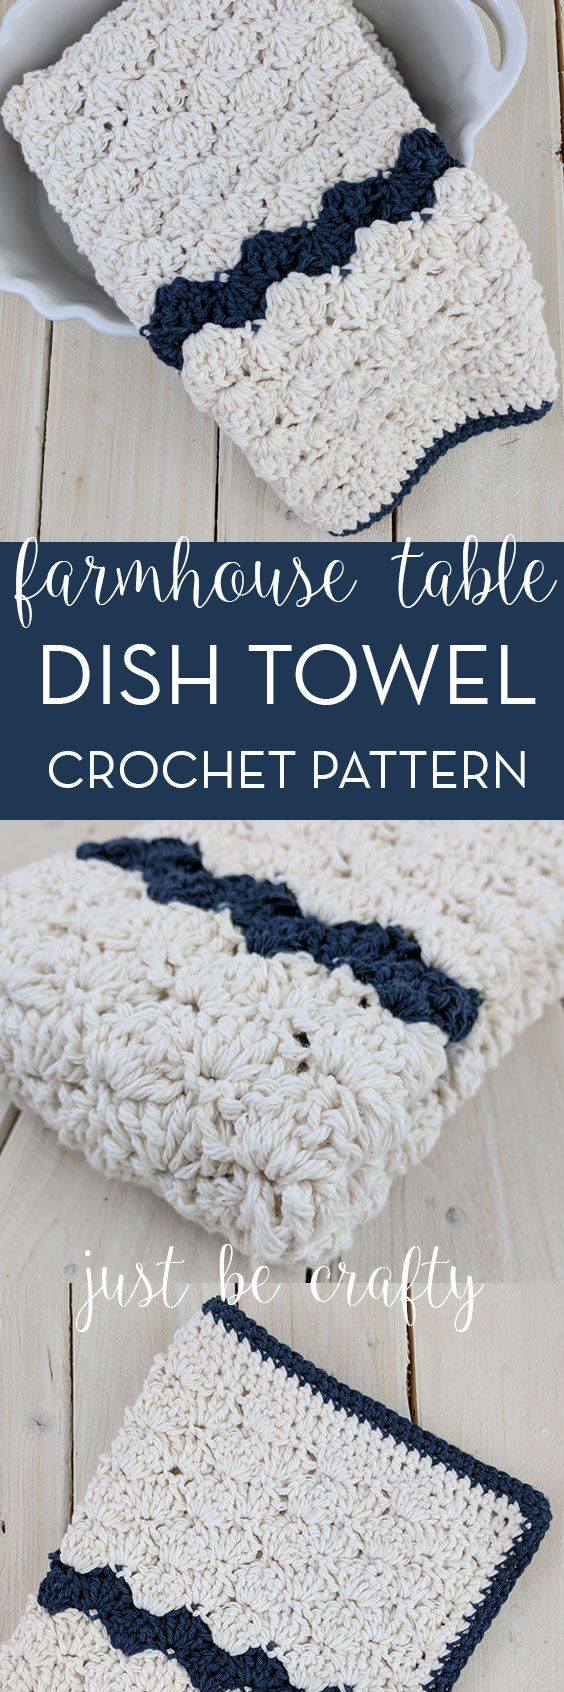 Crochet Farmhouse Table Dish Towel Pattern | Free Pattern by Just Be Crafty